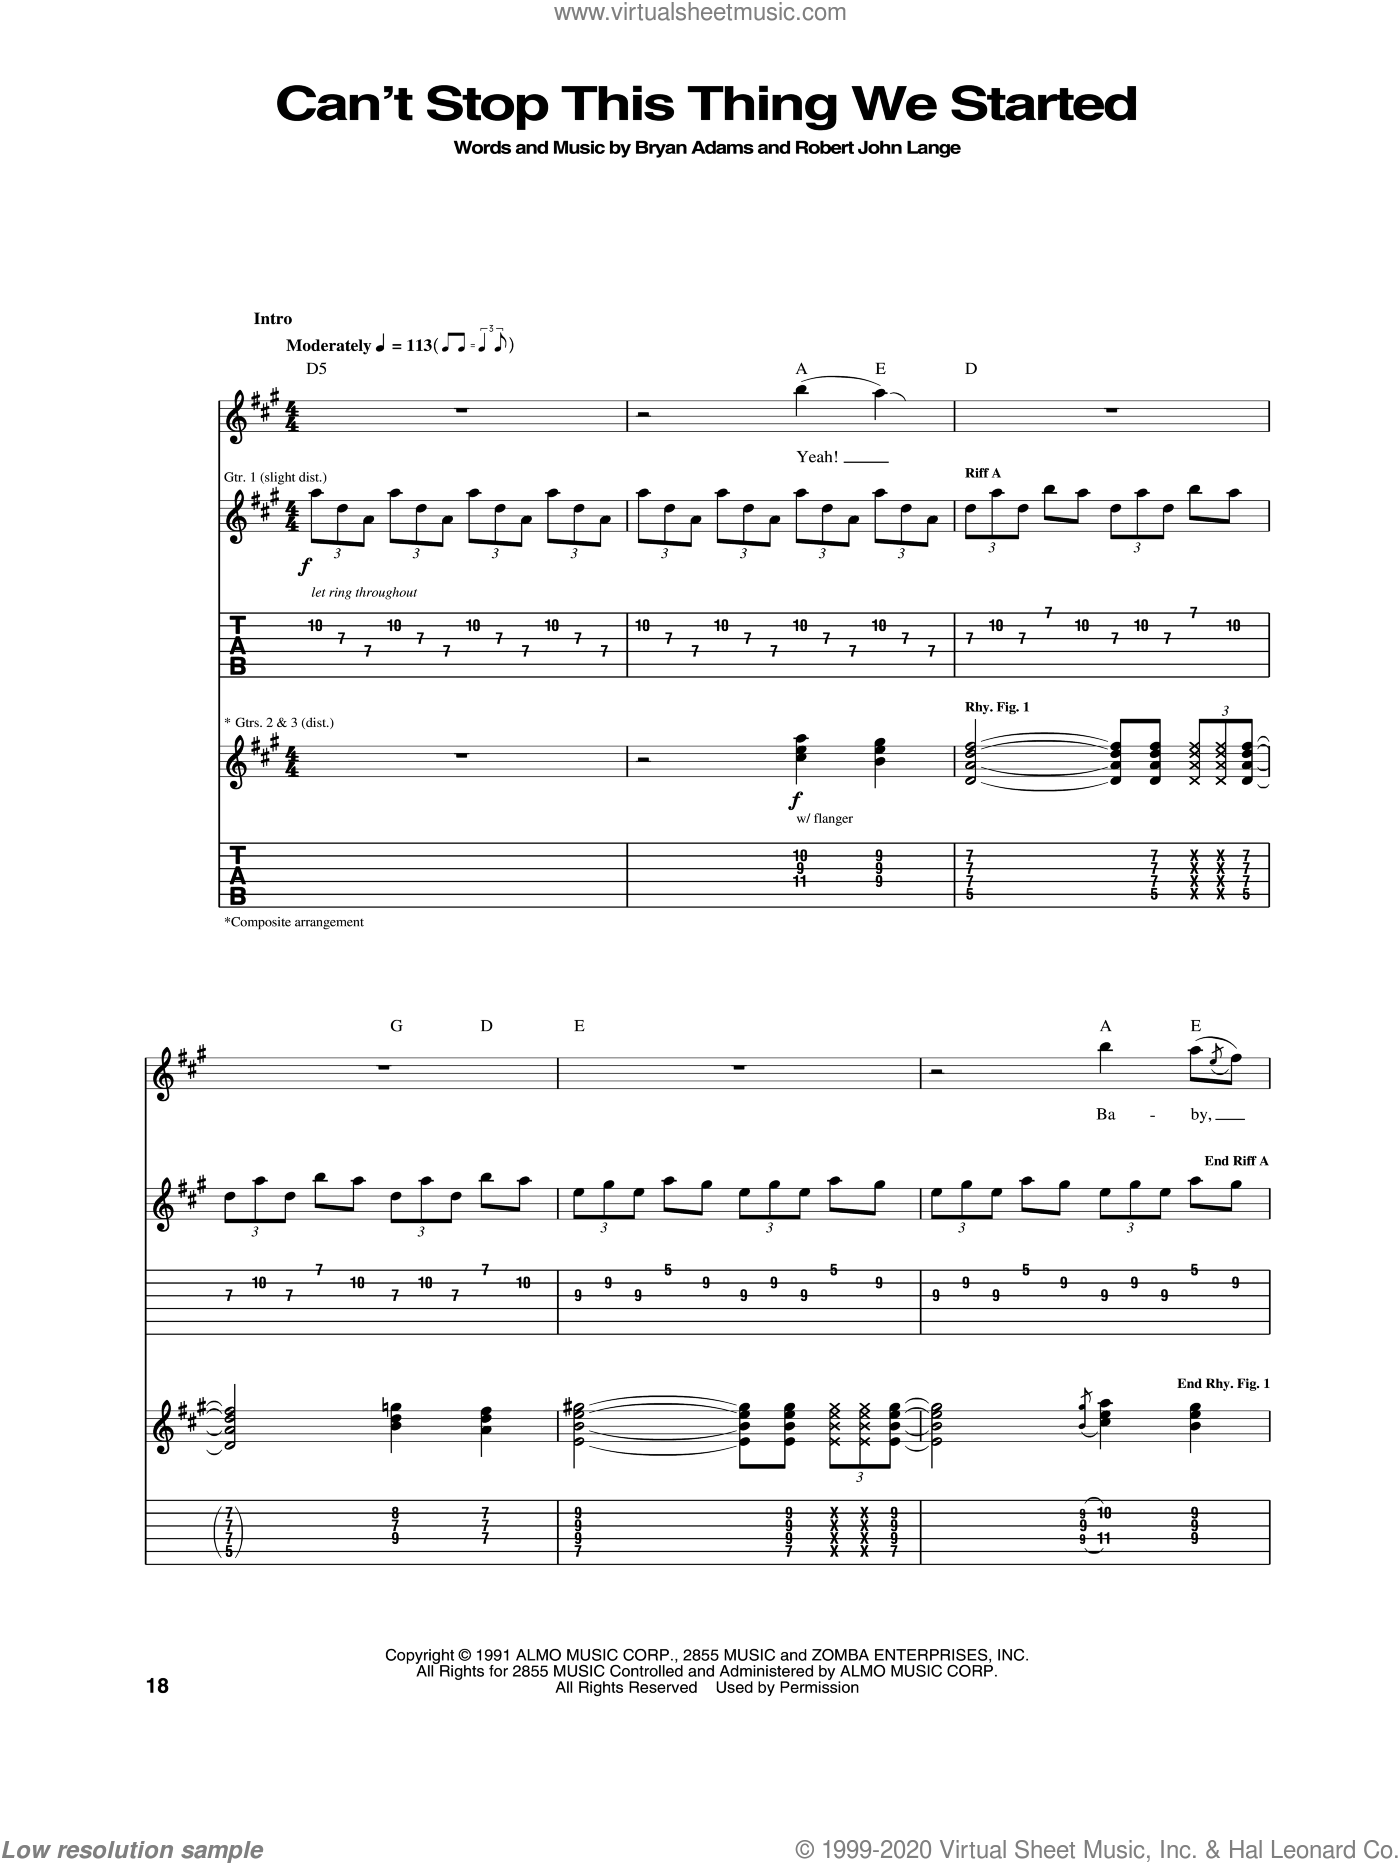 Can't Stop This Thing We Started sheet music for guitar (tablature) by Bryan Adams and Robert John Lange, intermediate skill level